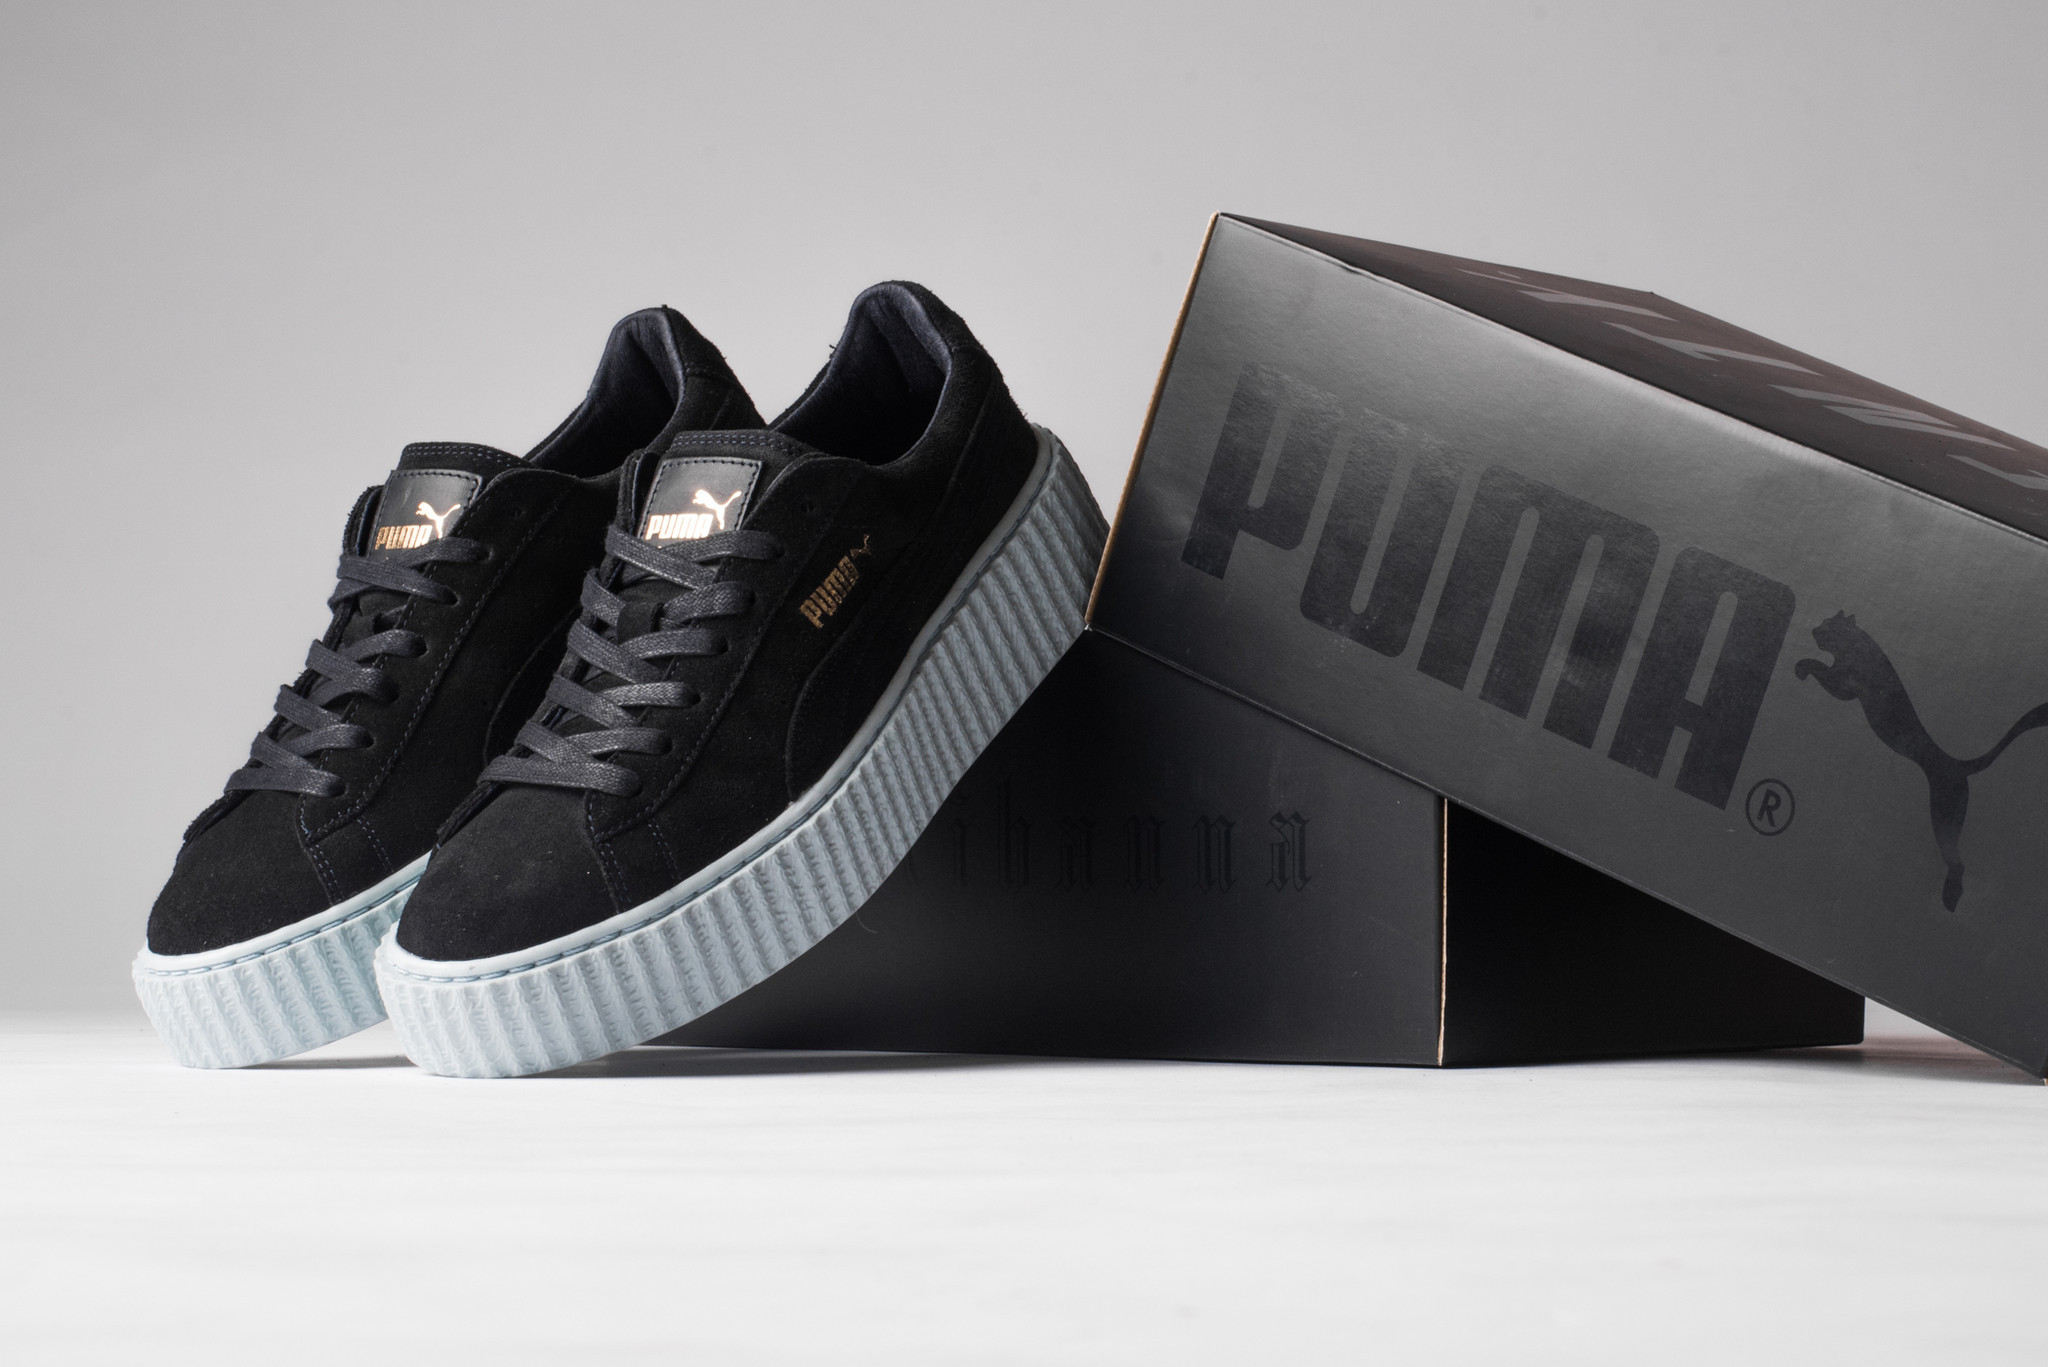 puma fenty creepers south africa